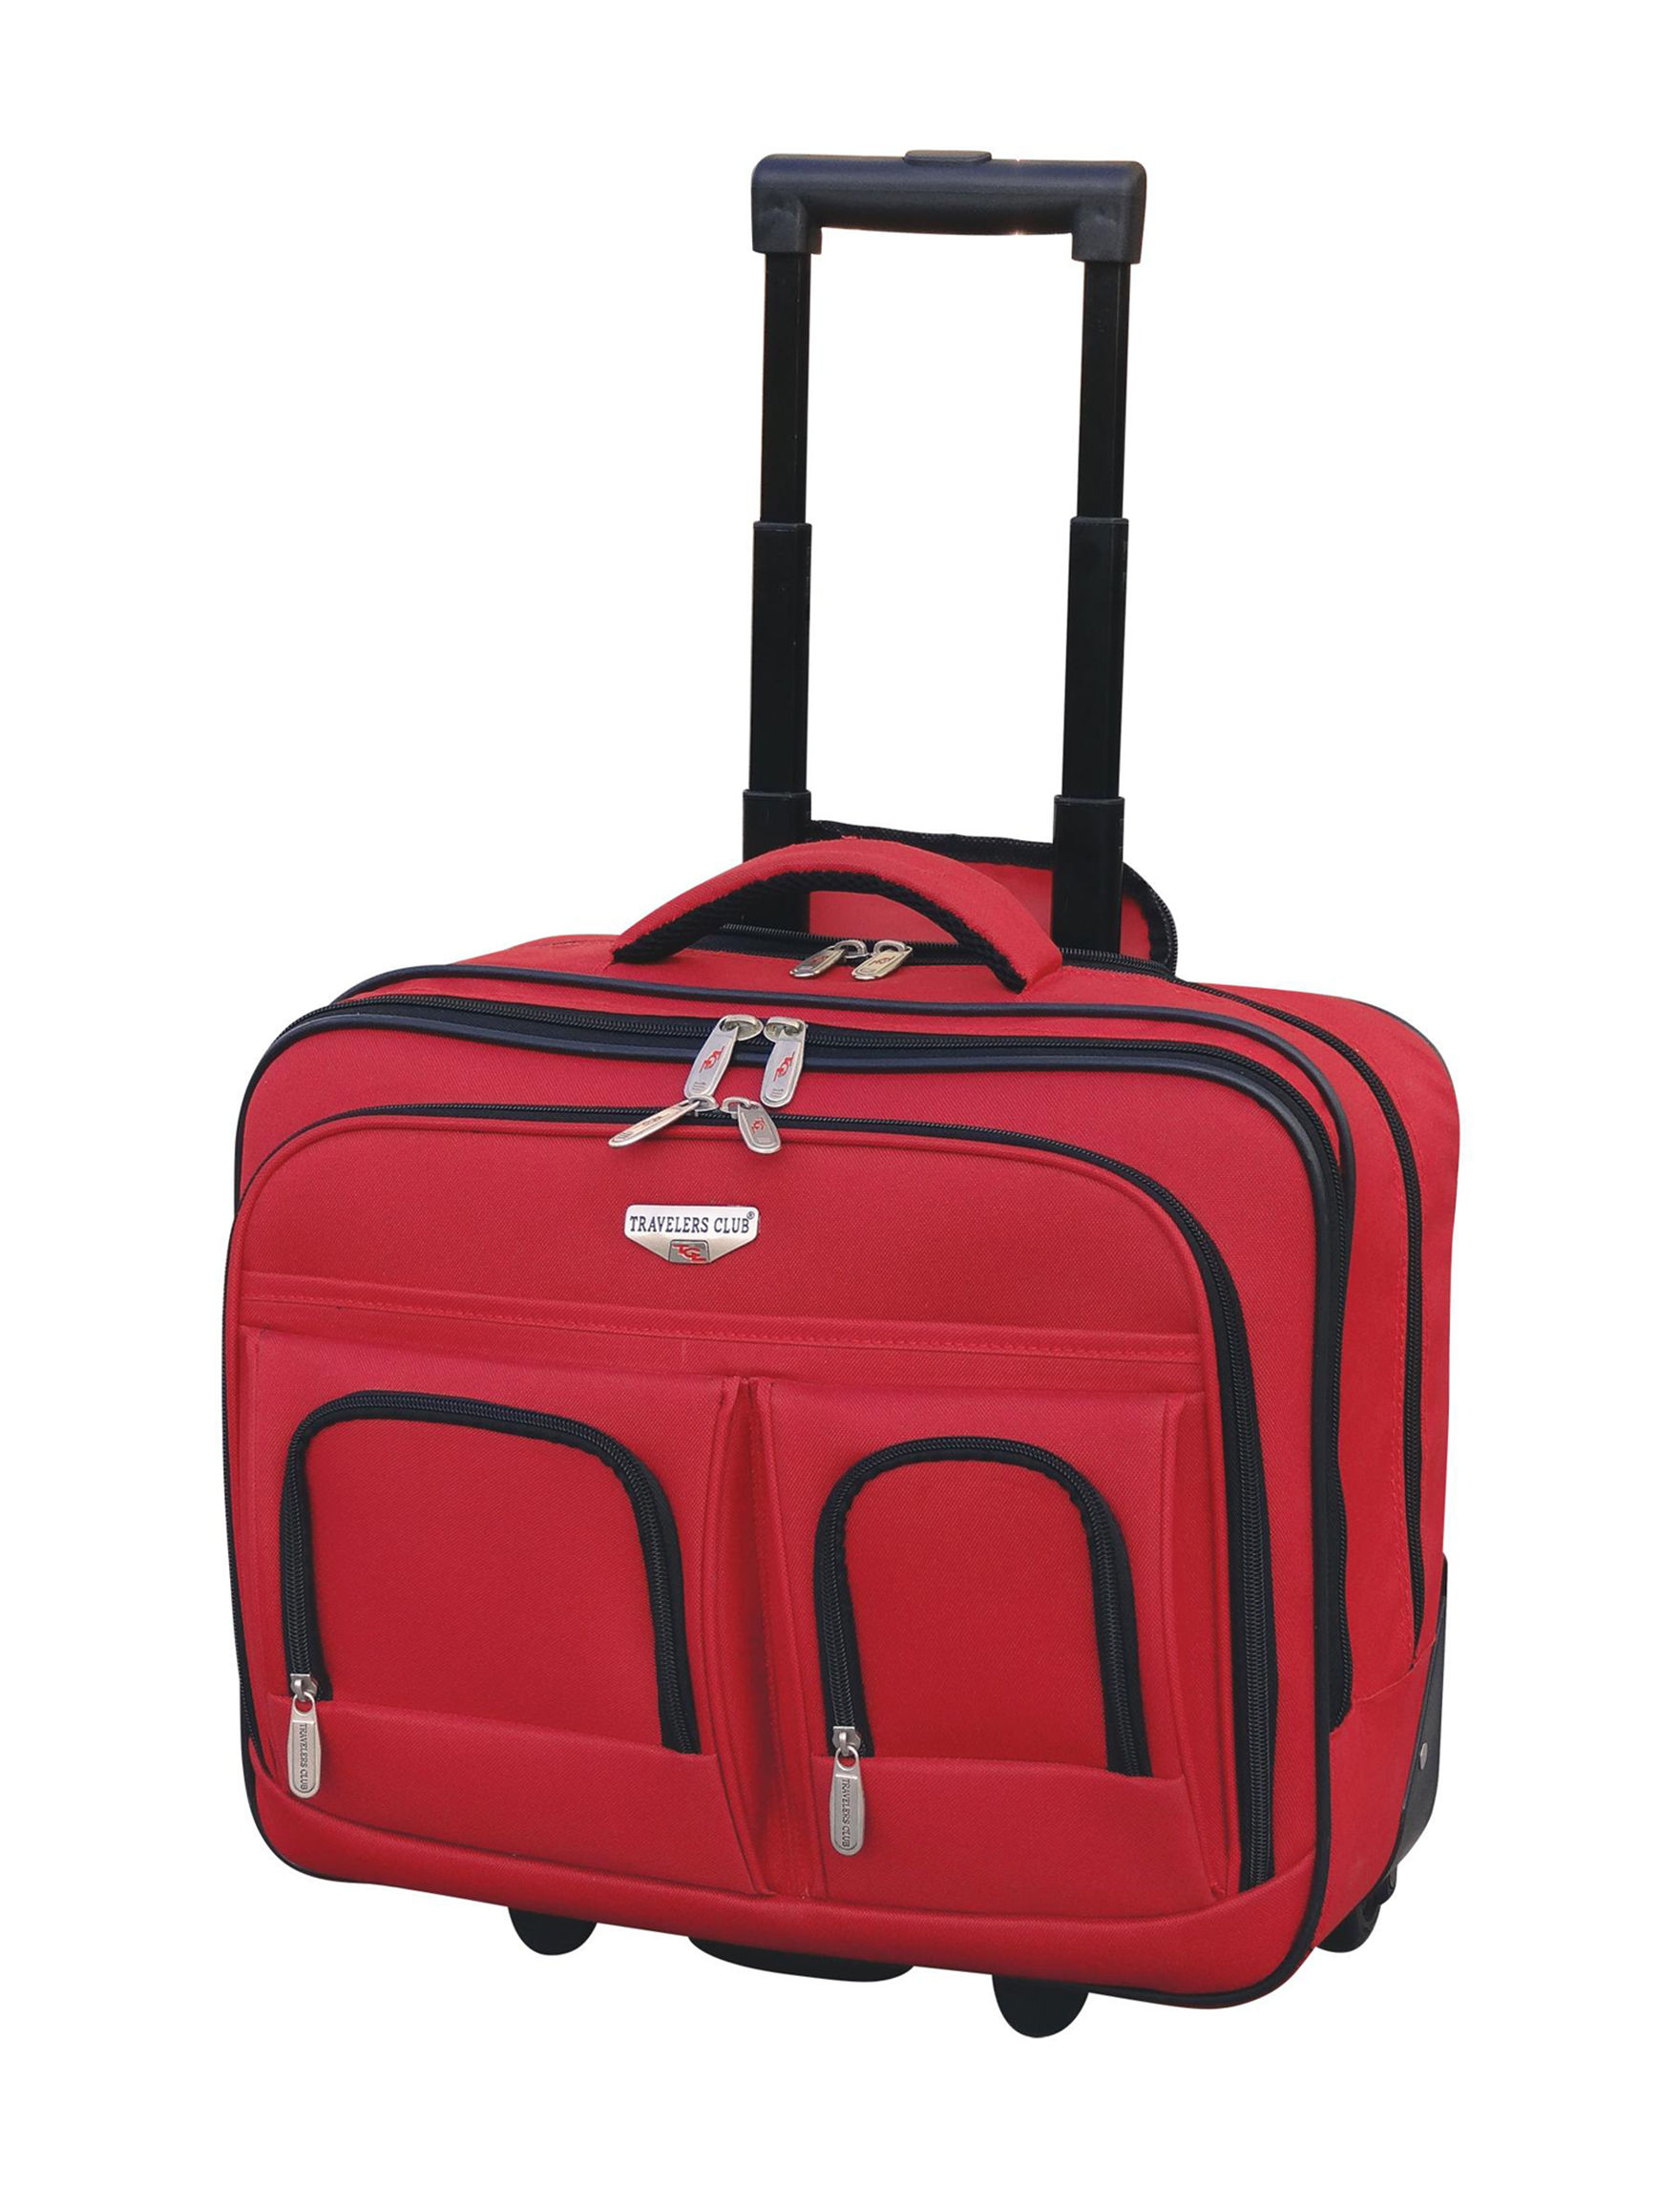 Travelers Club Luggage Red Briefcases Laptop & Messenger Bags